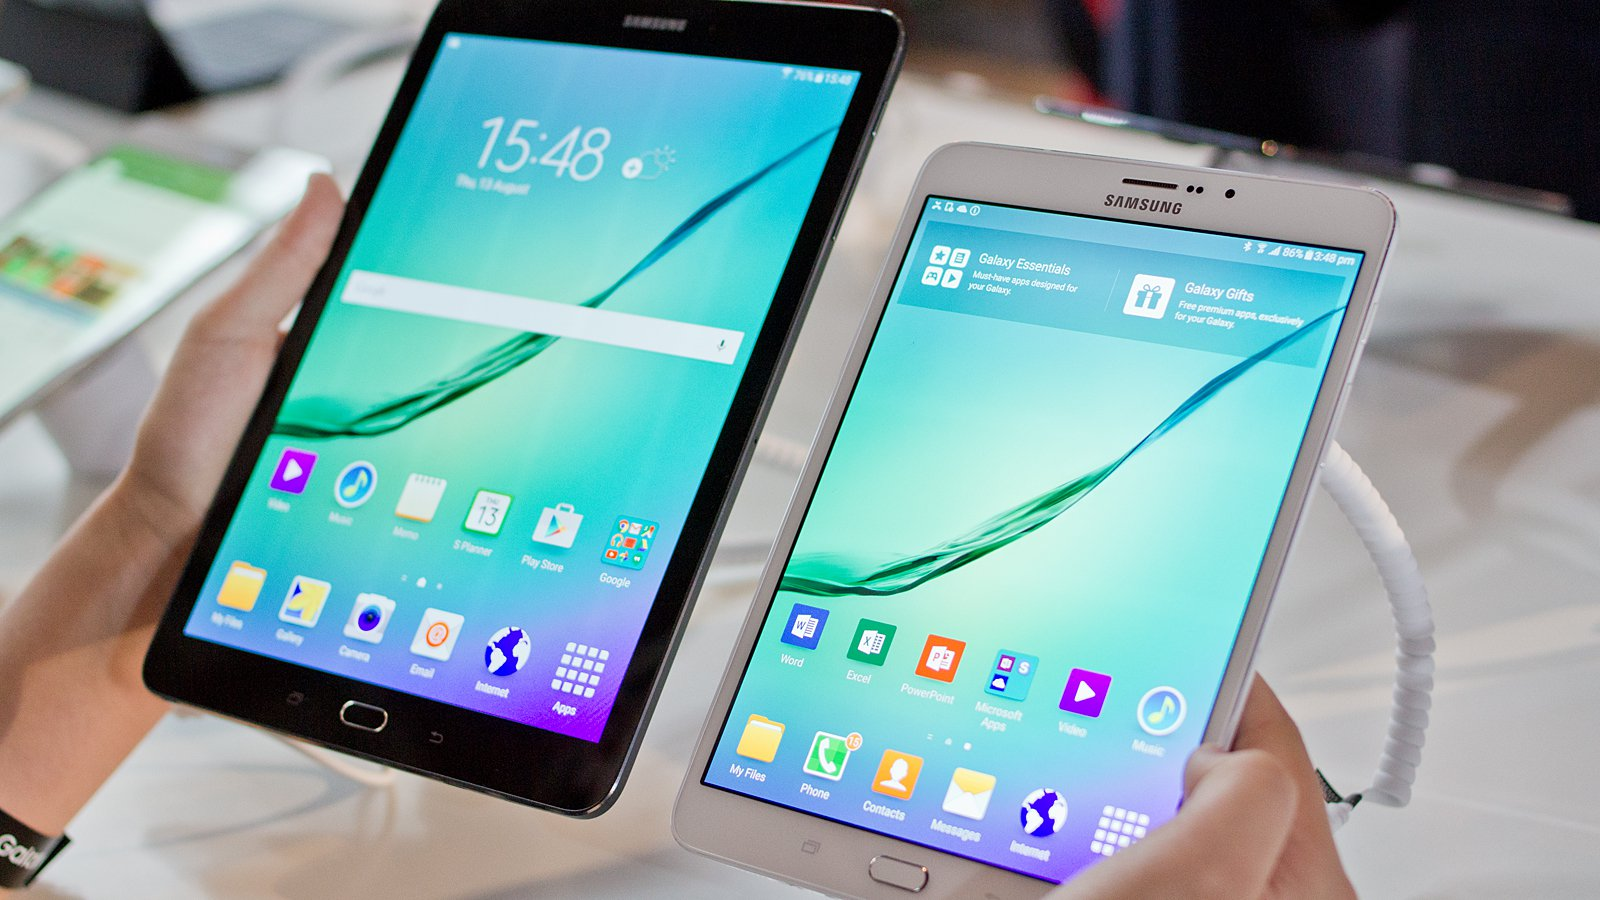 Samsung Galaxy Tab S2 Prices To Drop After Latest Samsung Releases